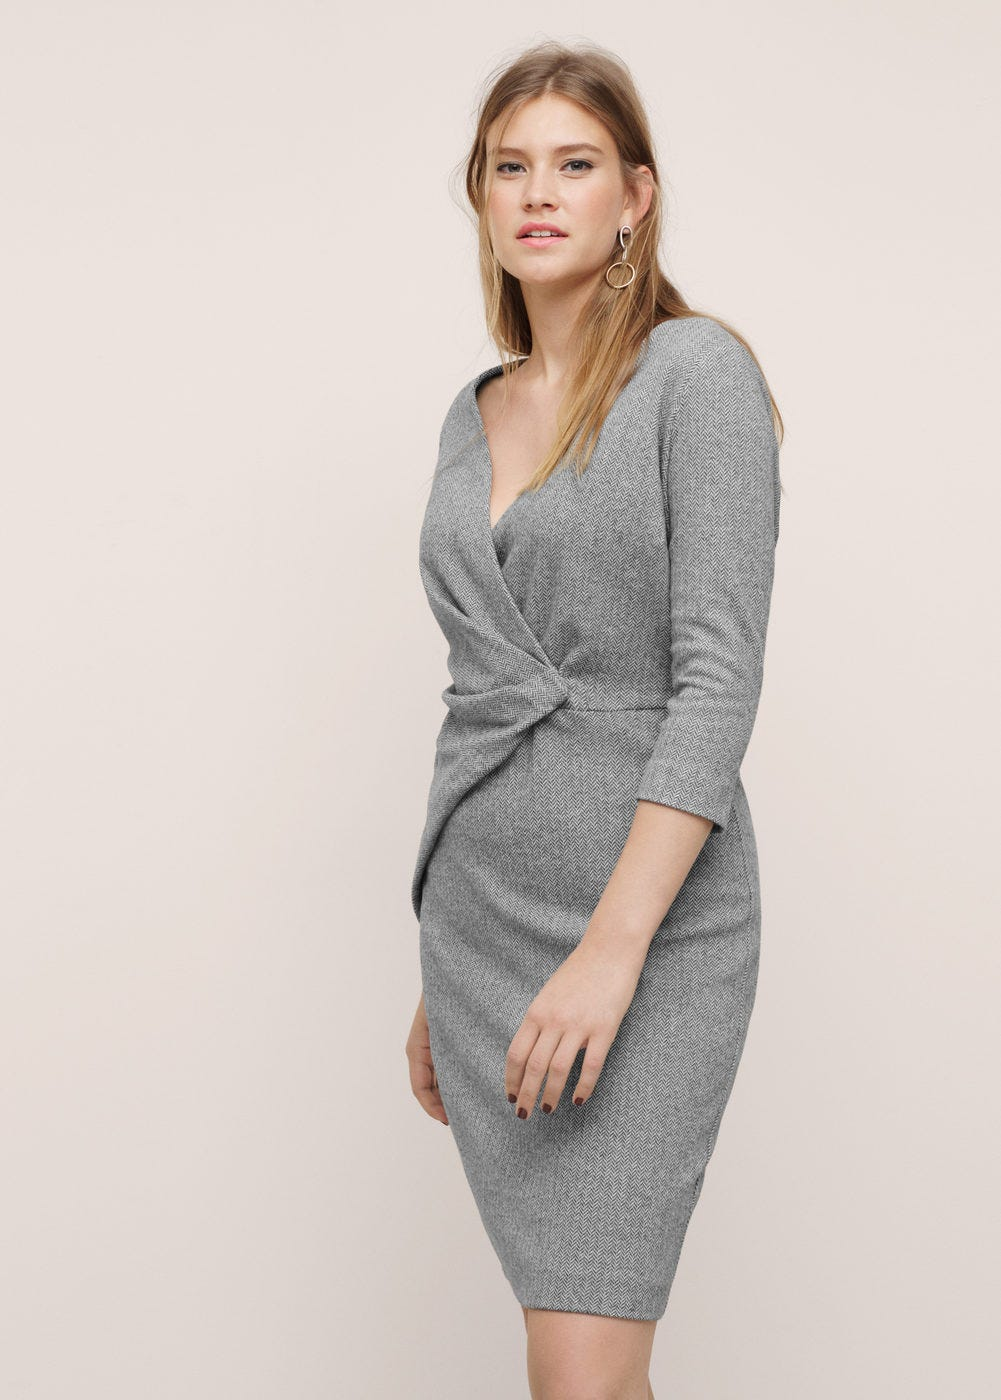 89e35ad337 How To Dress For Your Tricky Body Type